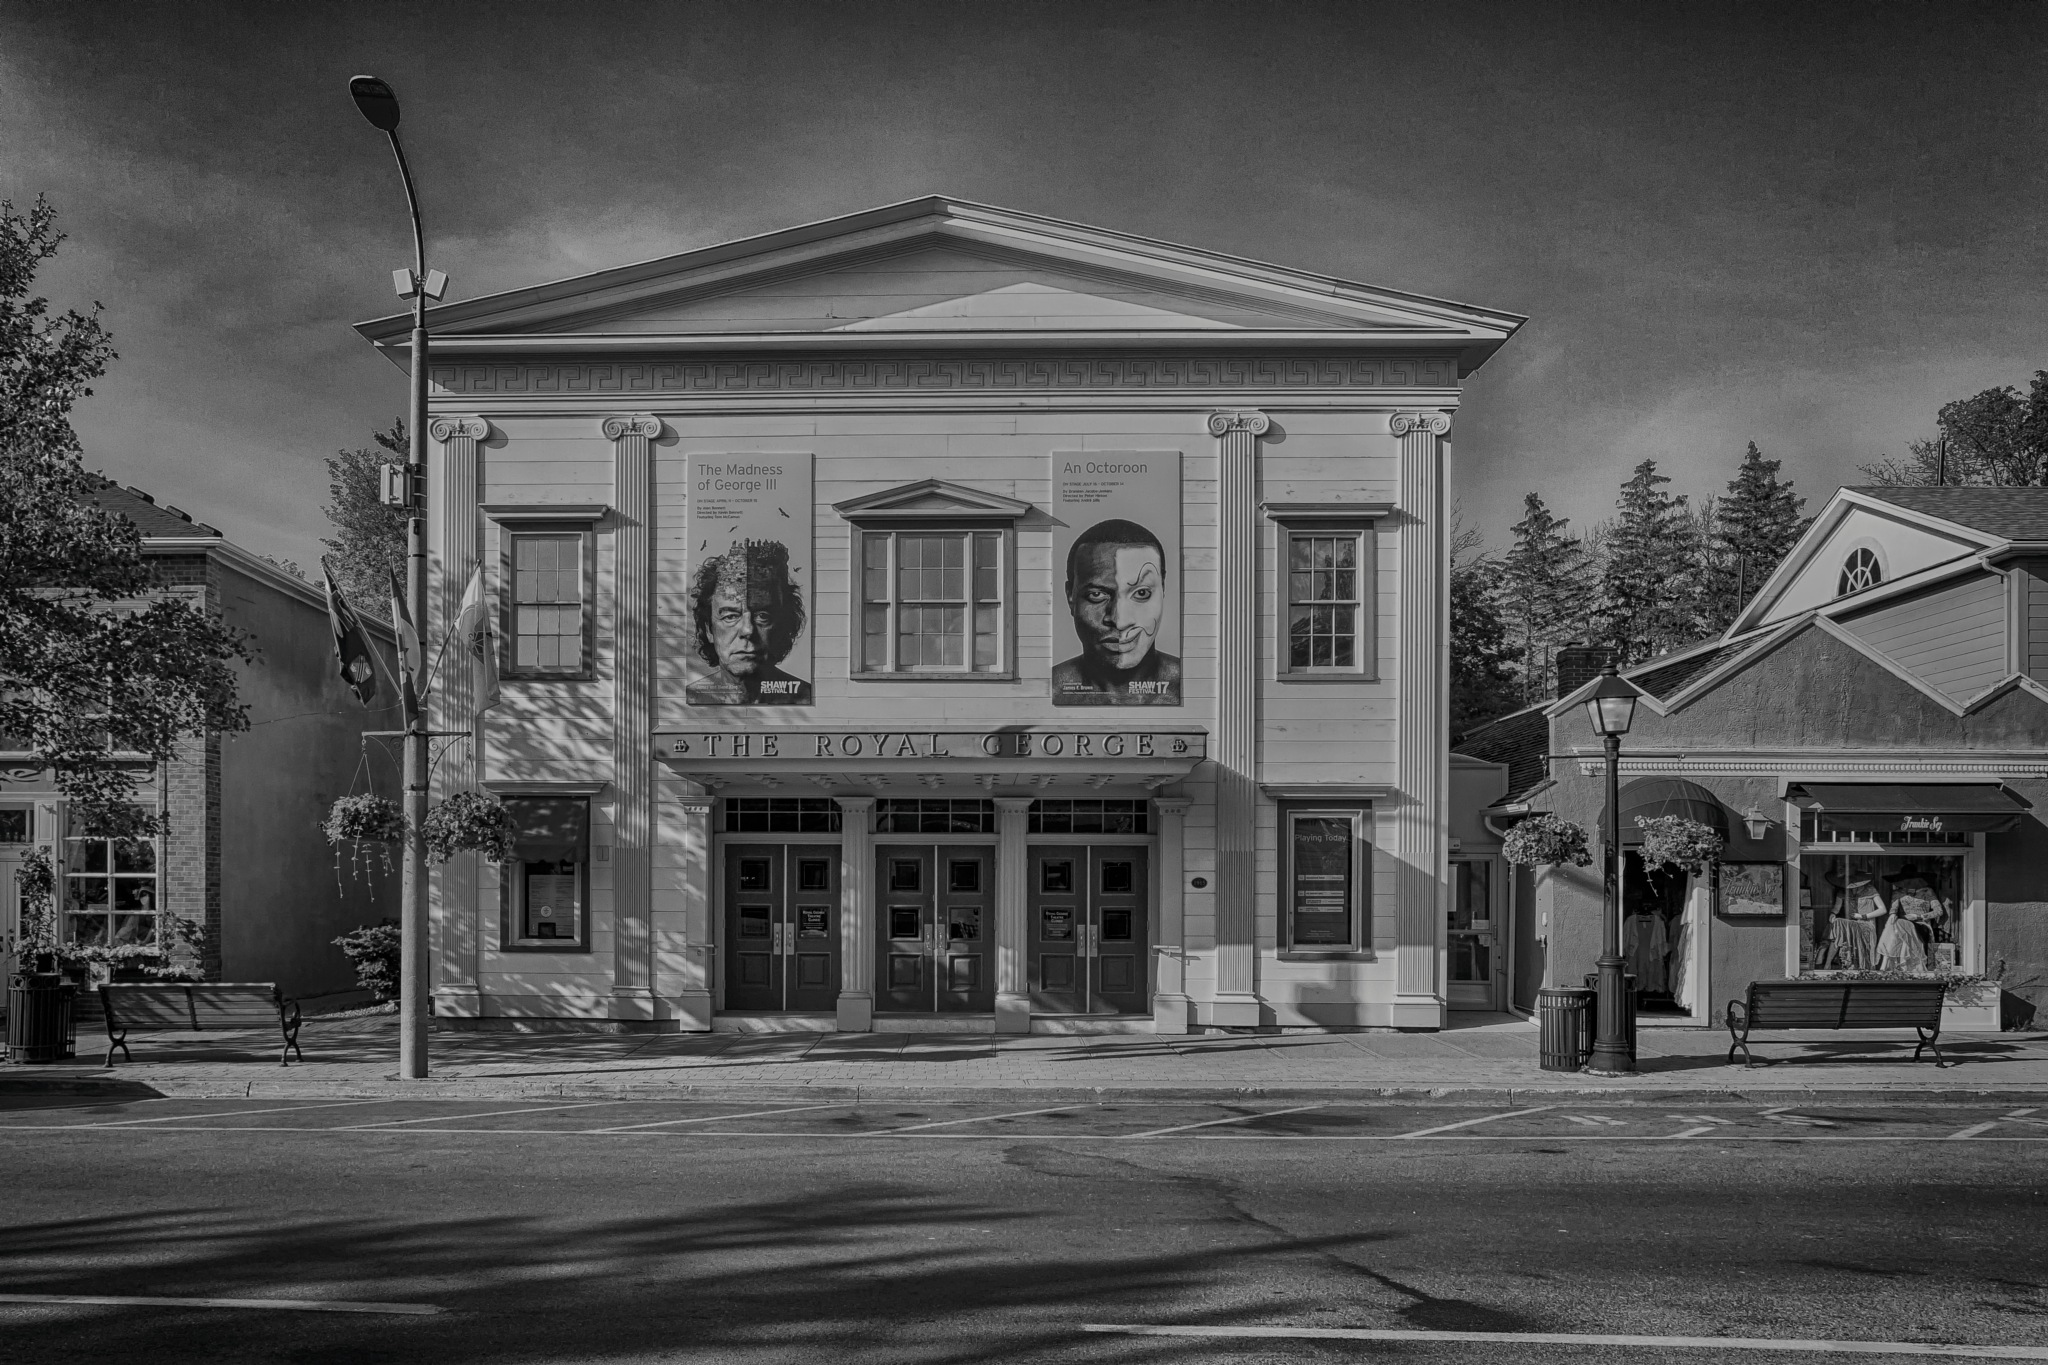 The Royal George Theater  by Joe Chrvala